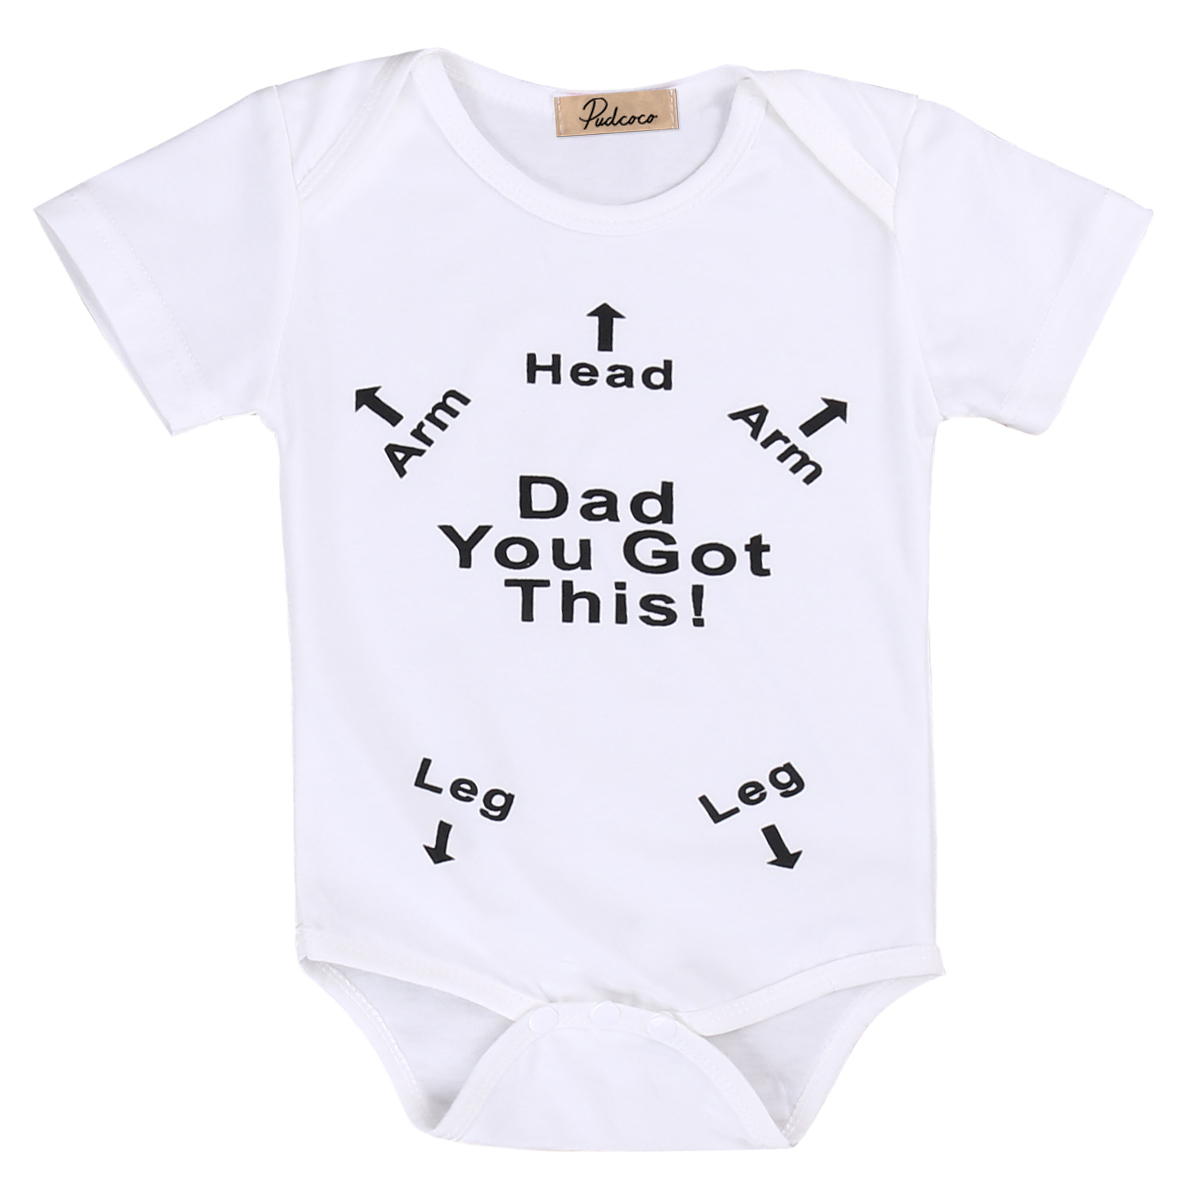 Pudcoco Newest For Newborn Baby Girls Boys Cotton Clothes O-Neck Short Sleeve Arrow Romper with White One-Pieces